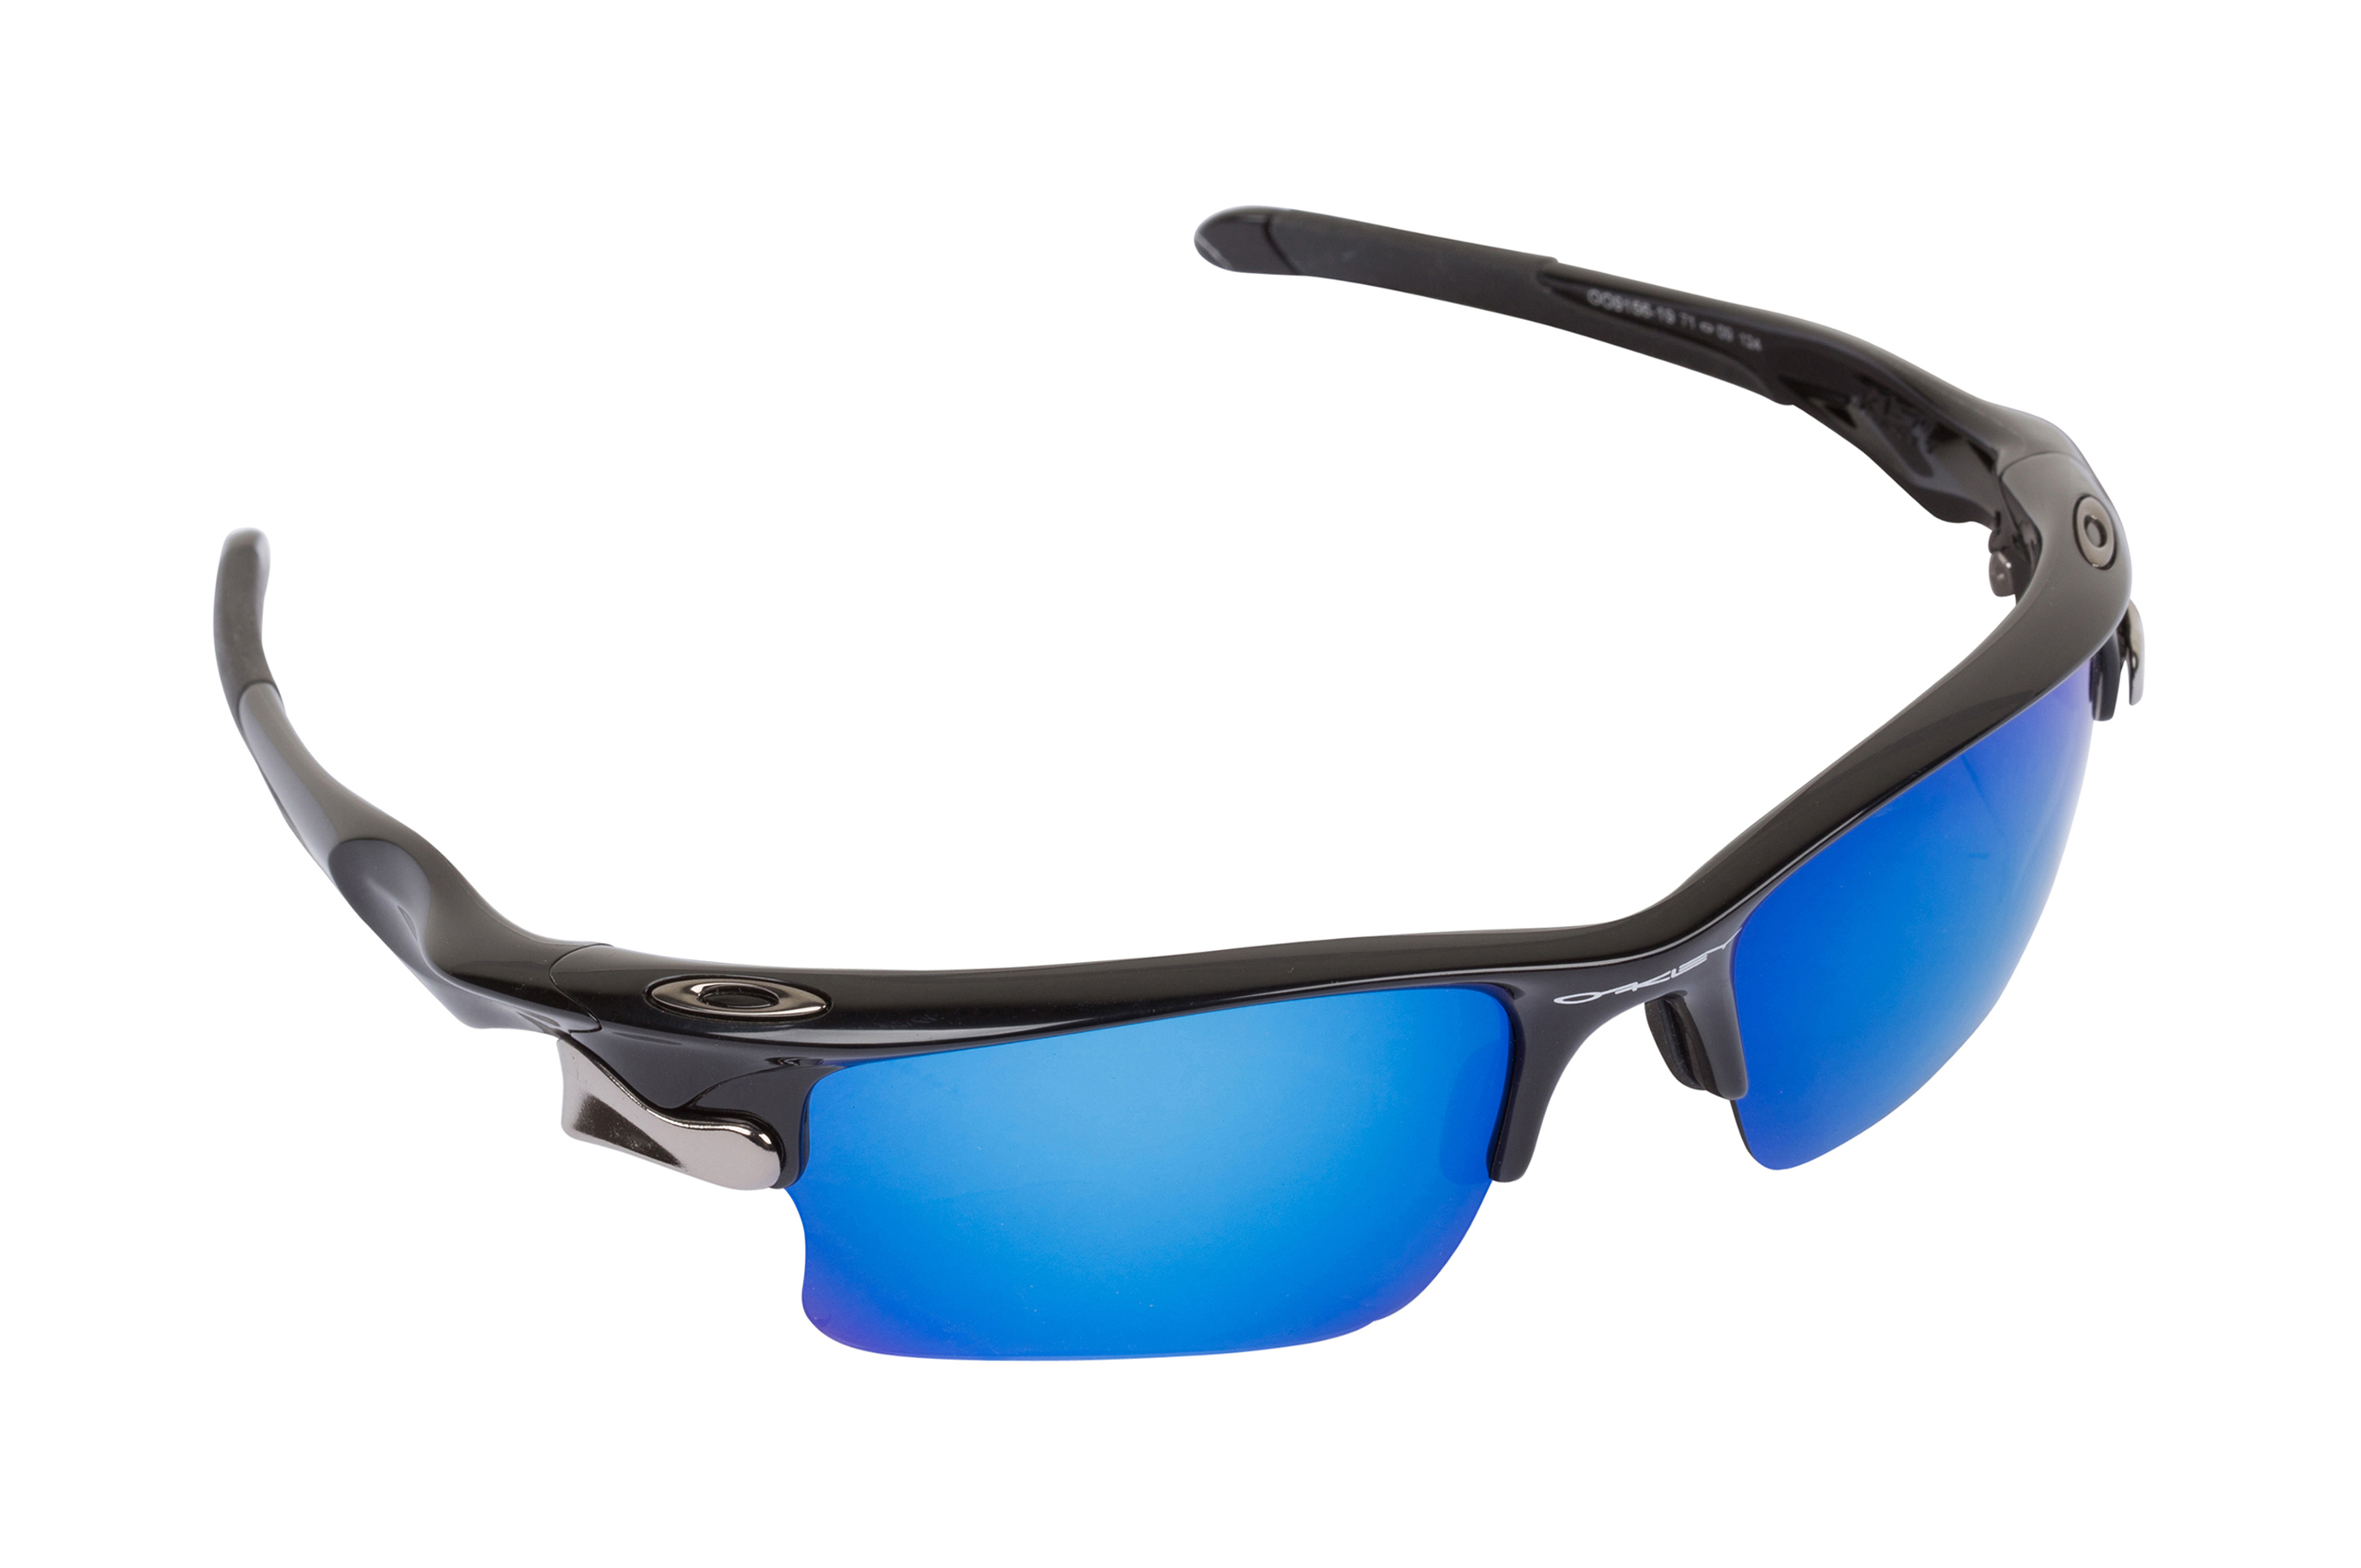 a1468aeec1c Fast Jacket XL Asian Fit Replacement Lenses by SEEK OPTICS to fit ...